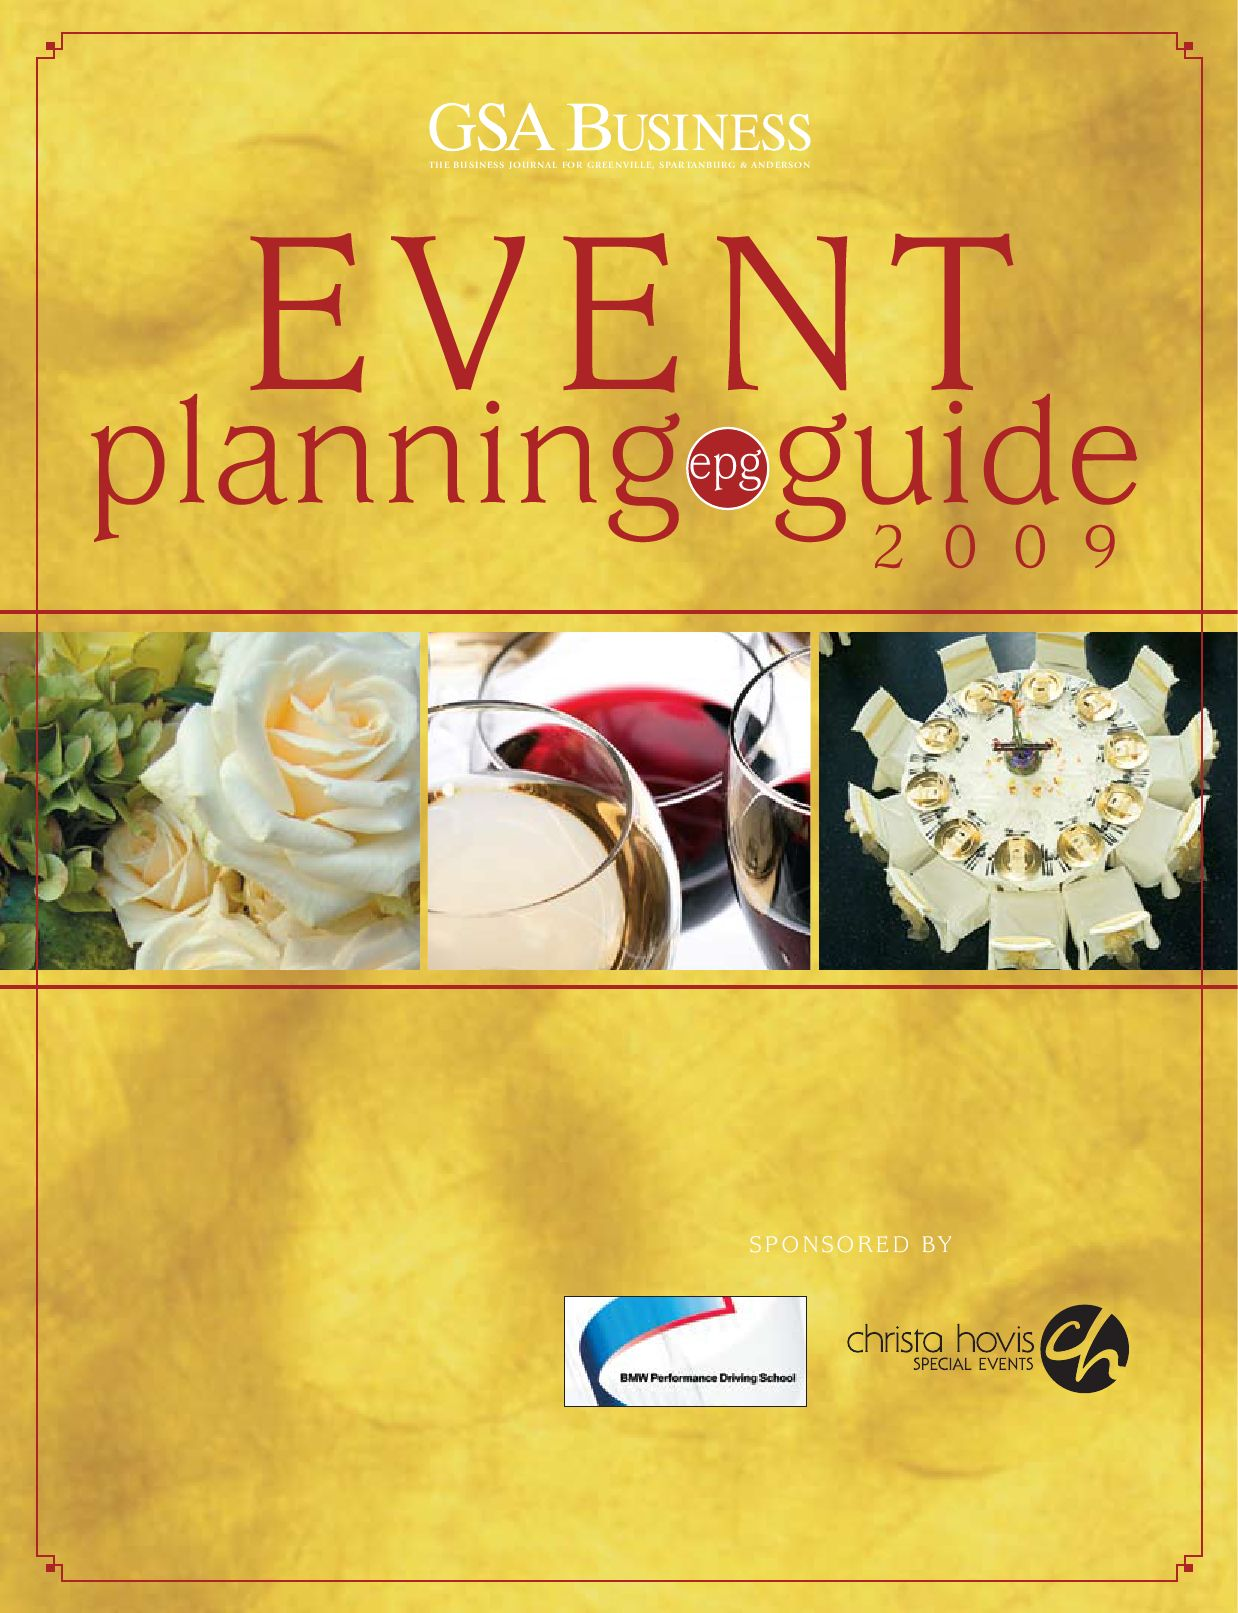 GSA Business 2009 Event Planning Guide by SC BIZ News issuu